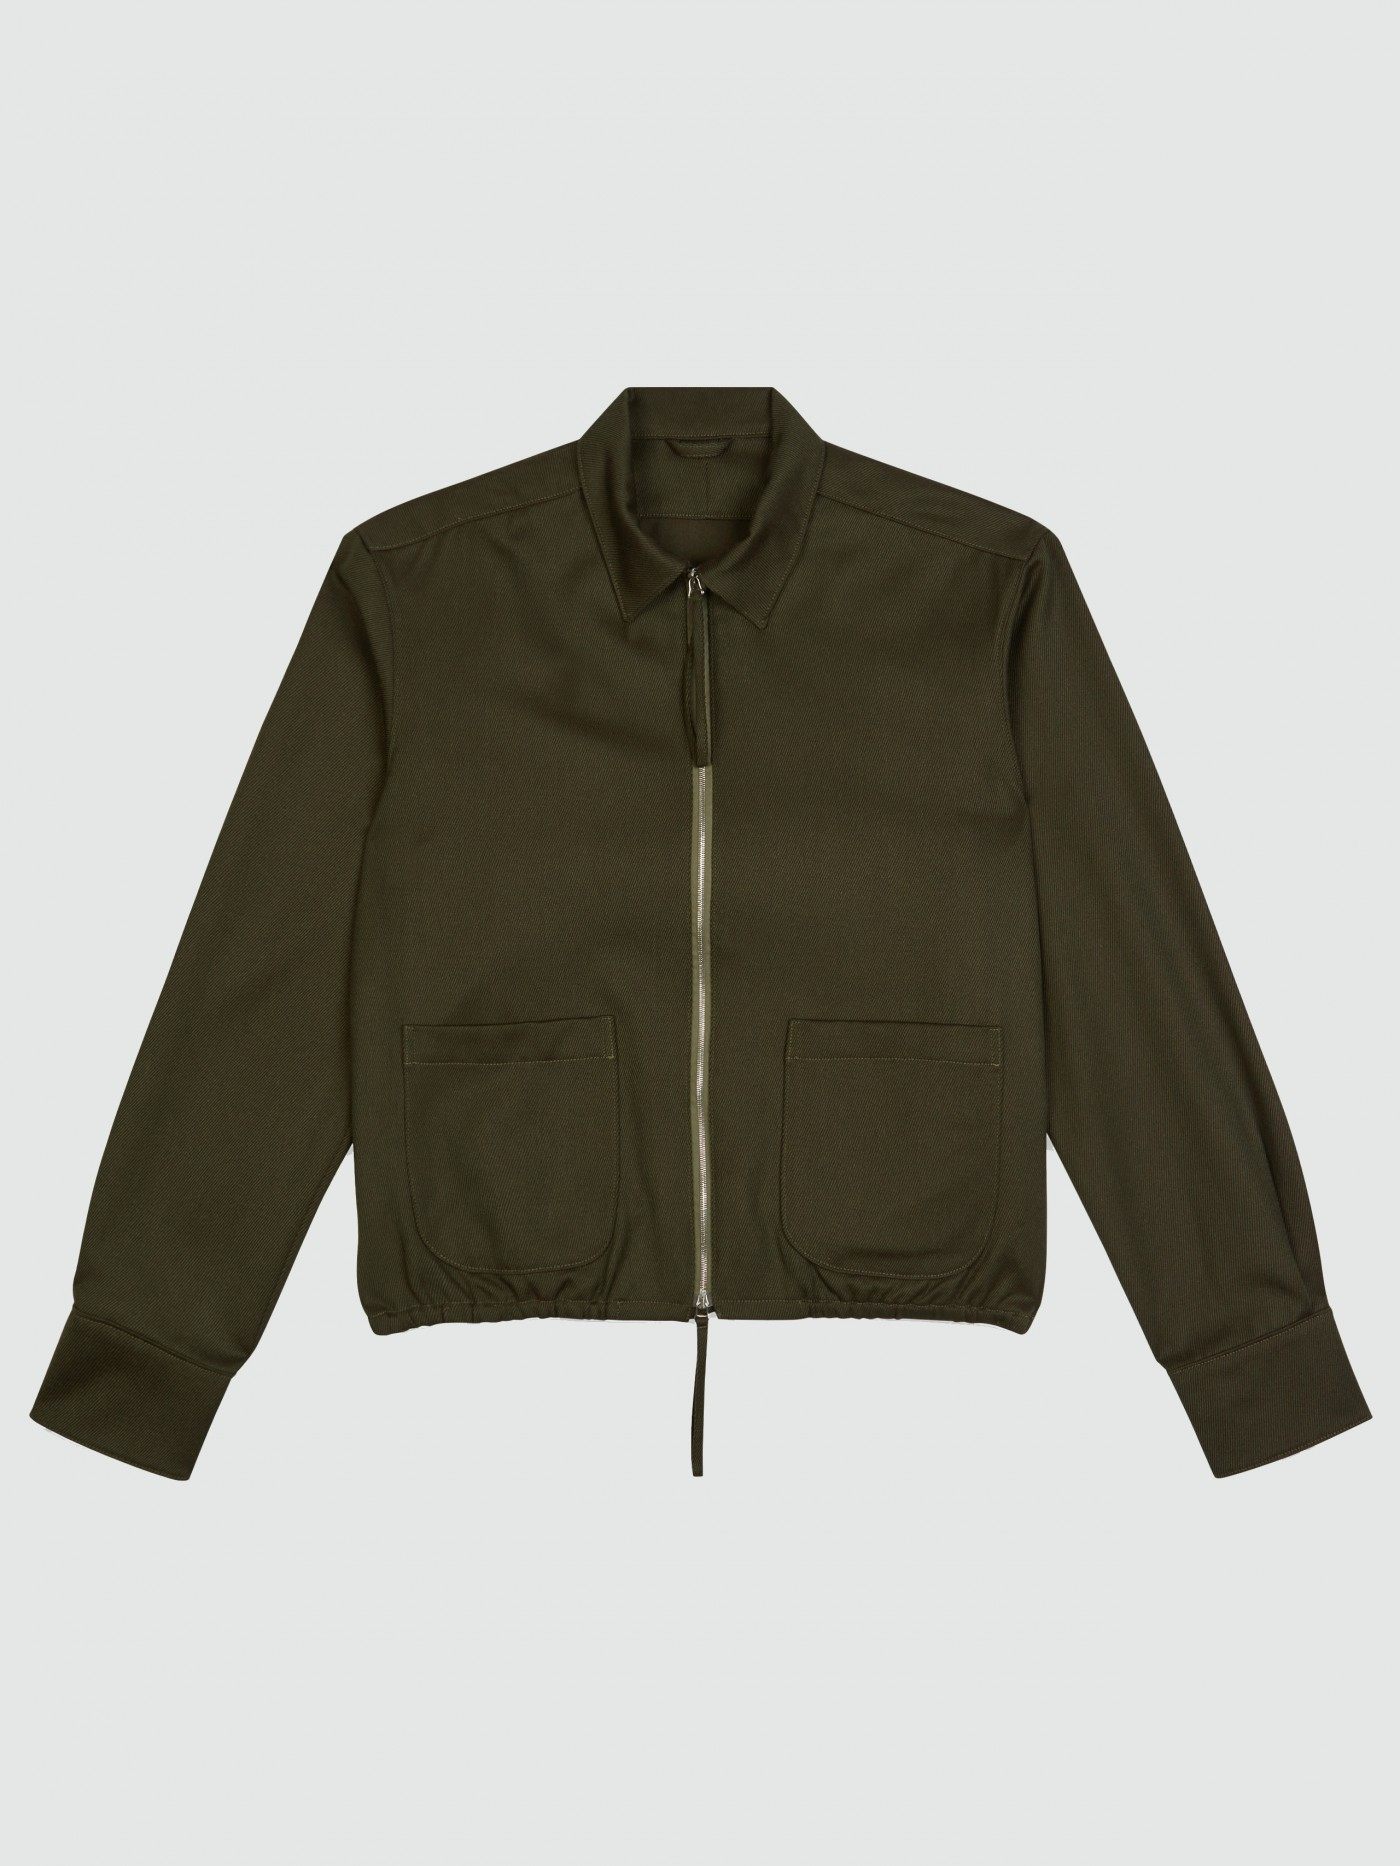 E. Tautz Army Green Whipcord Torquay Jacket